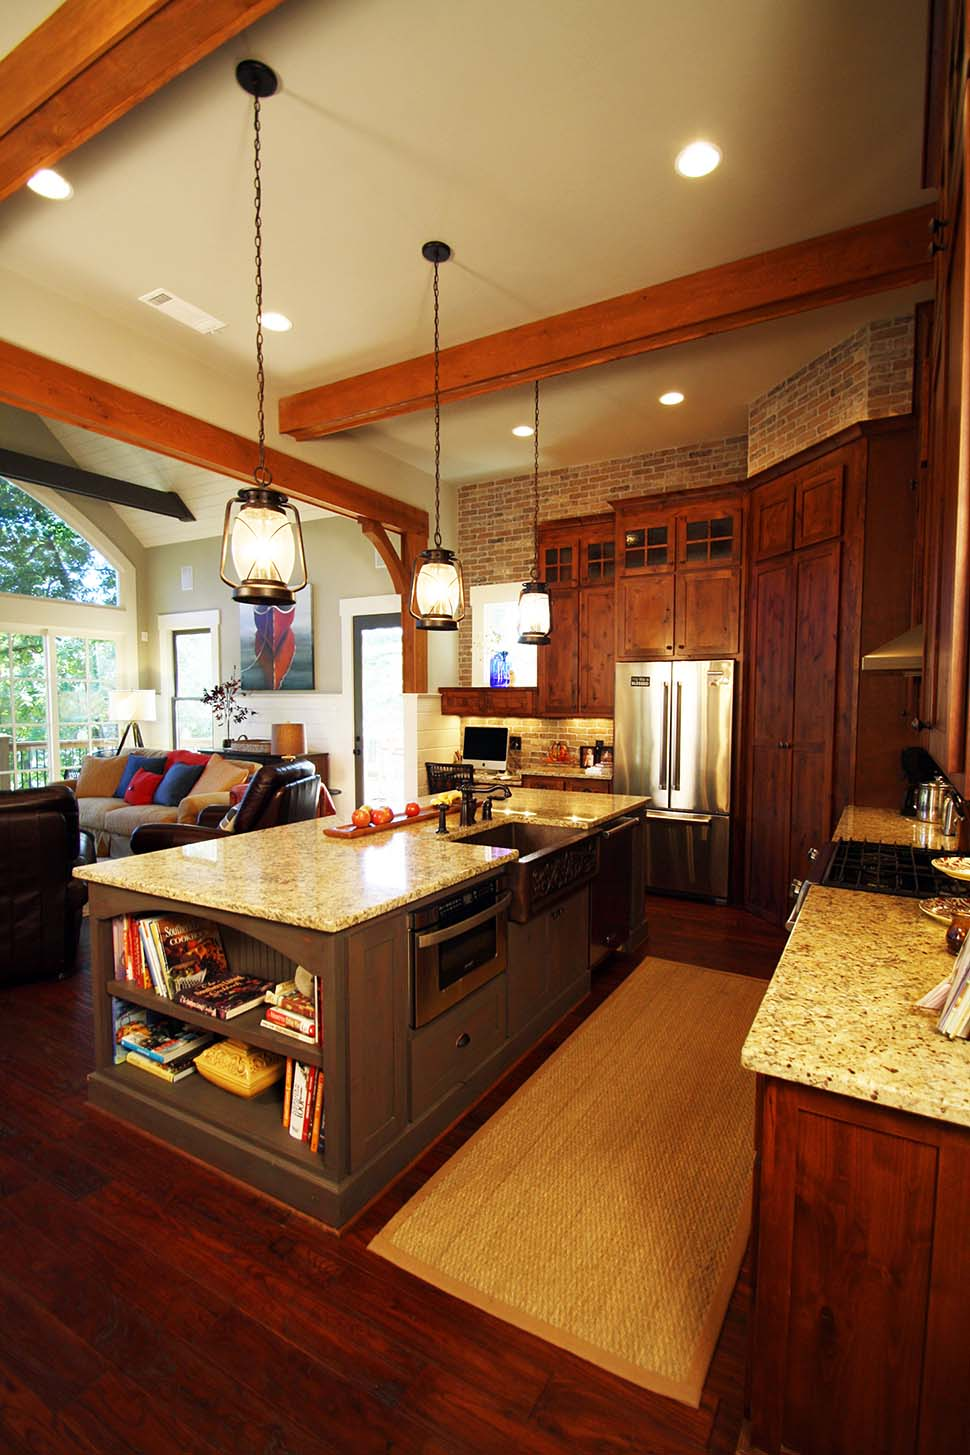 Craftsman, One-Story, Ranch, Traditional House Plan 97687 with 3 Beds, 3 Baths, 2 Car Garage Picture 7